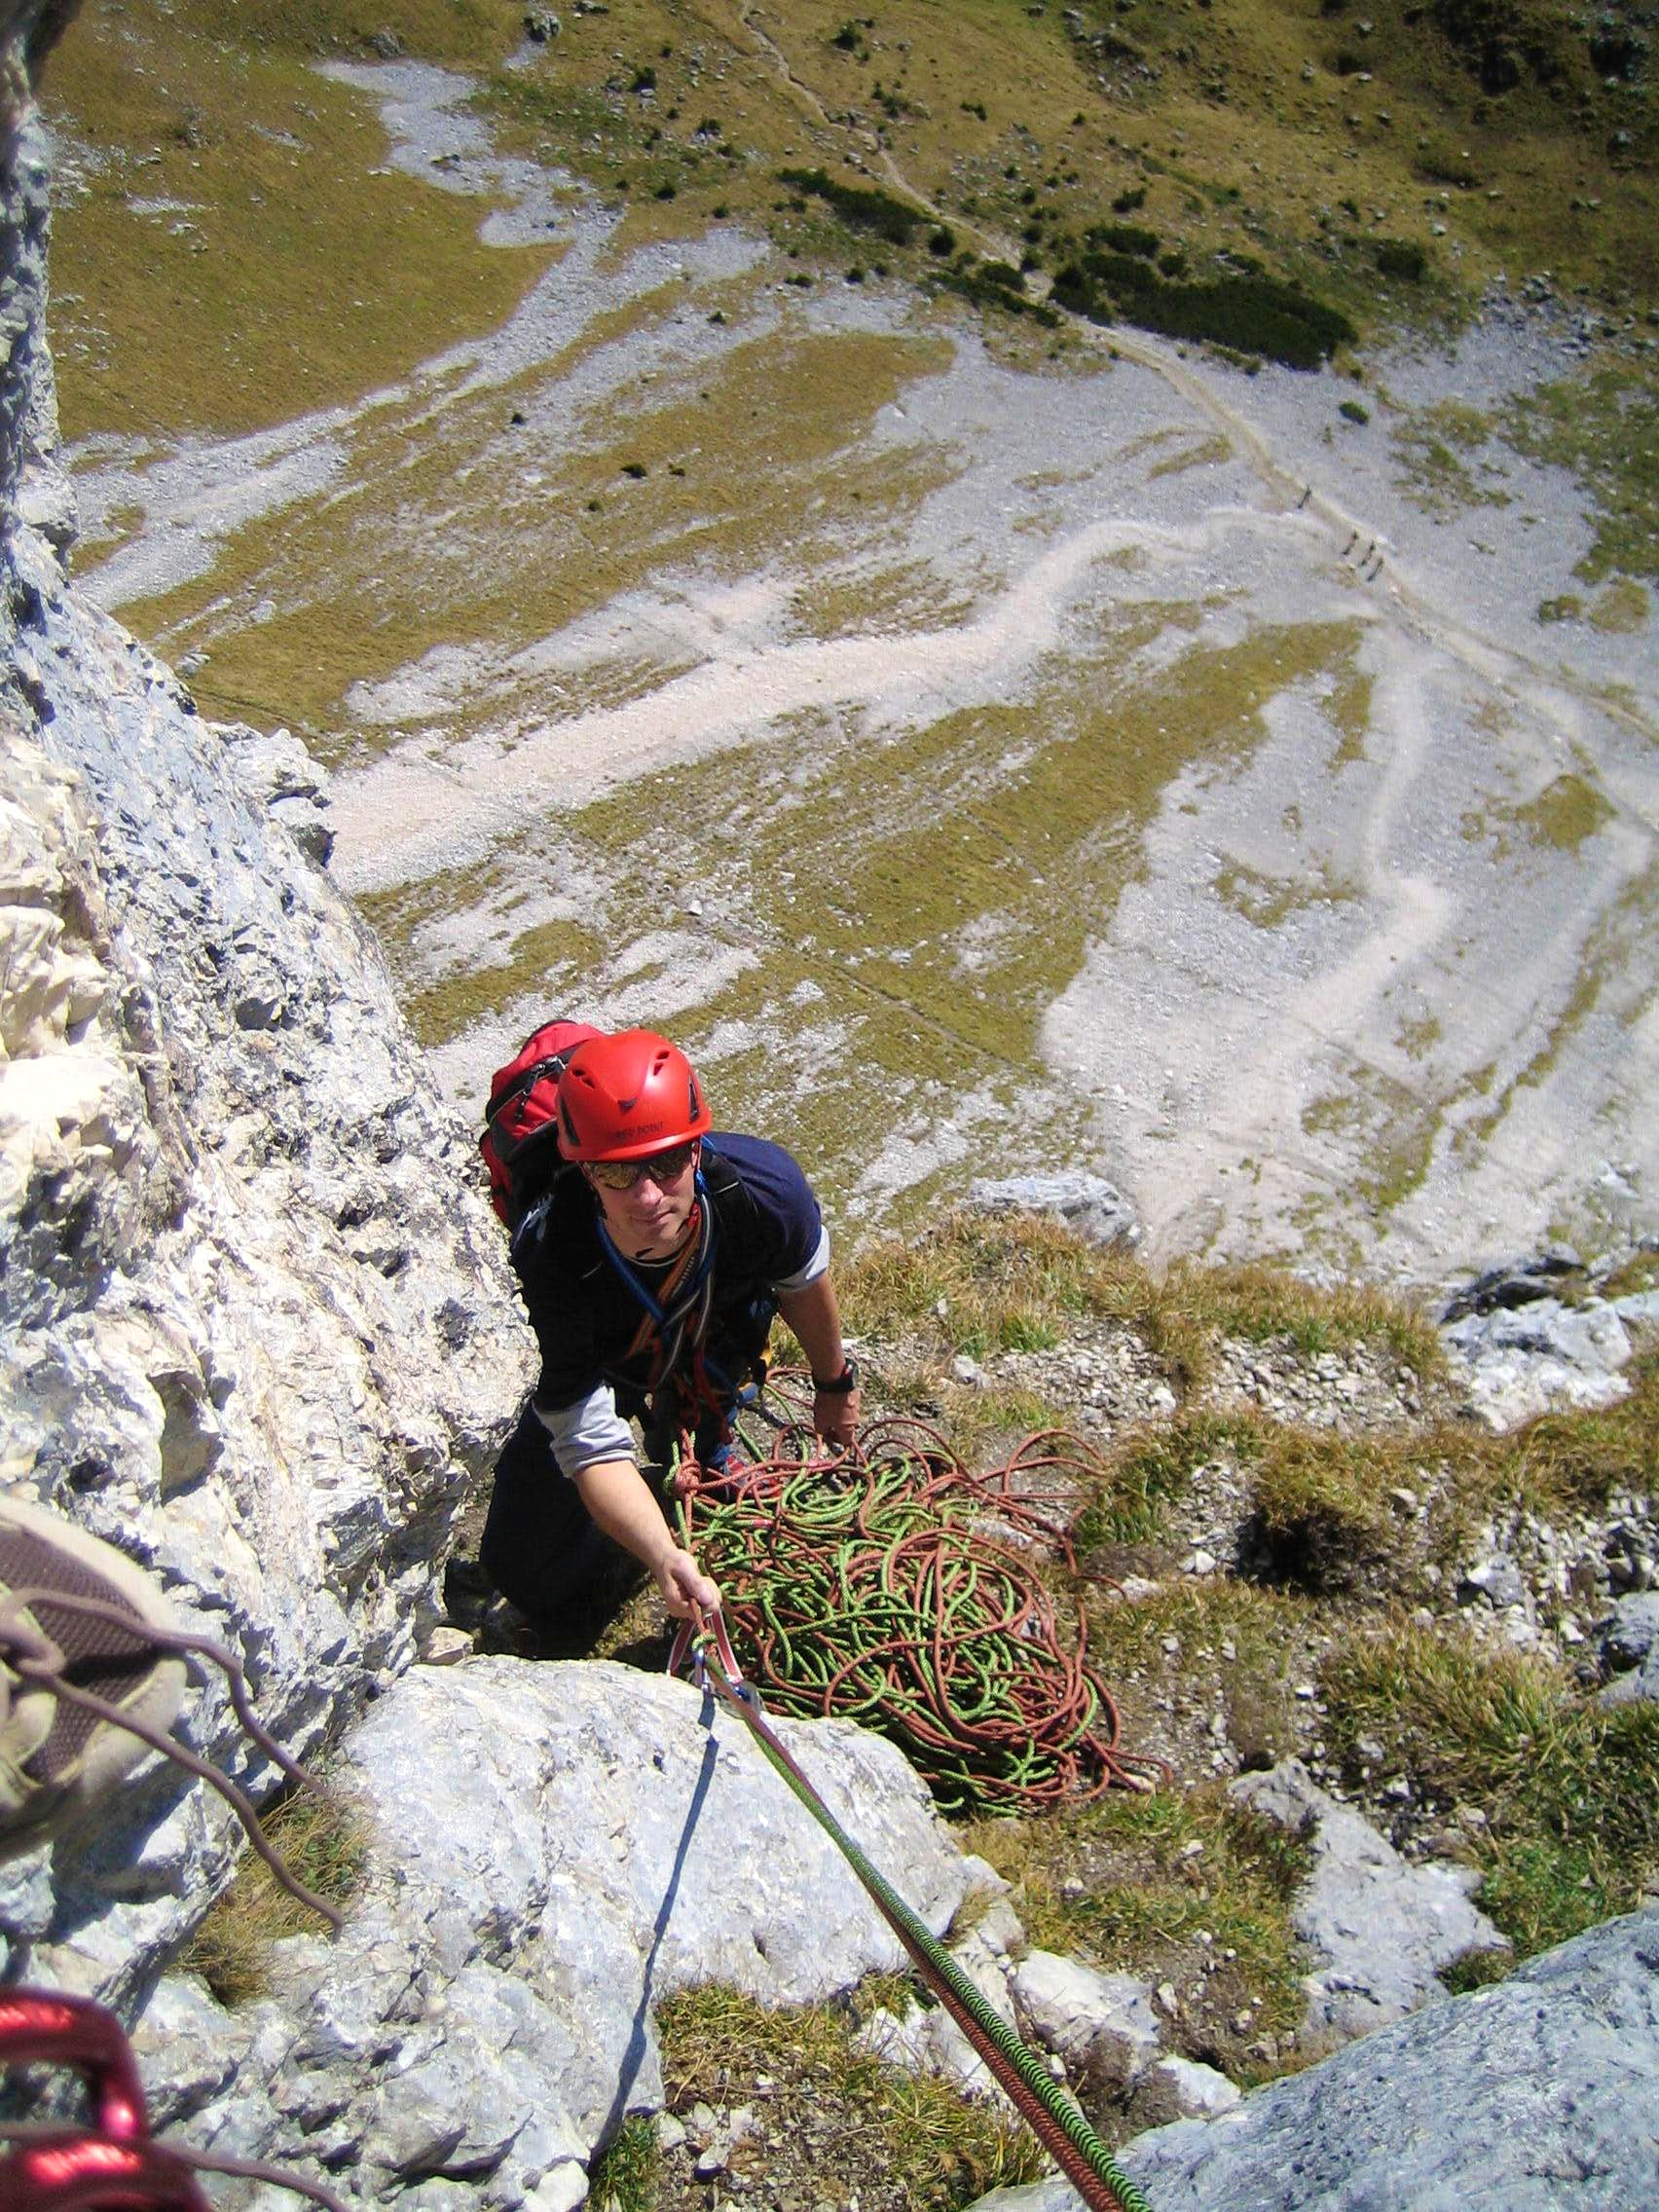 That´s what climbers are living for! Trip report of a perfect climbing day at Gimpel